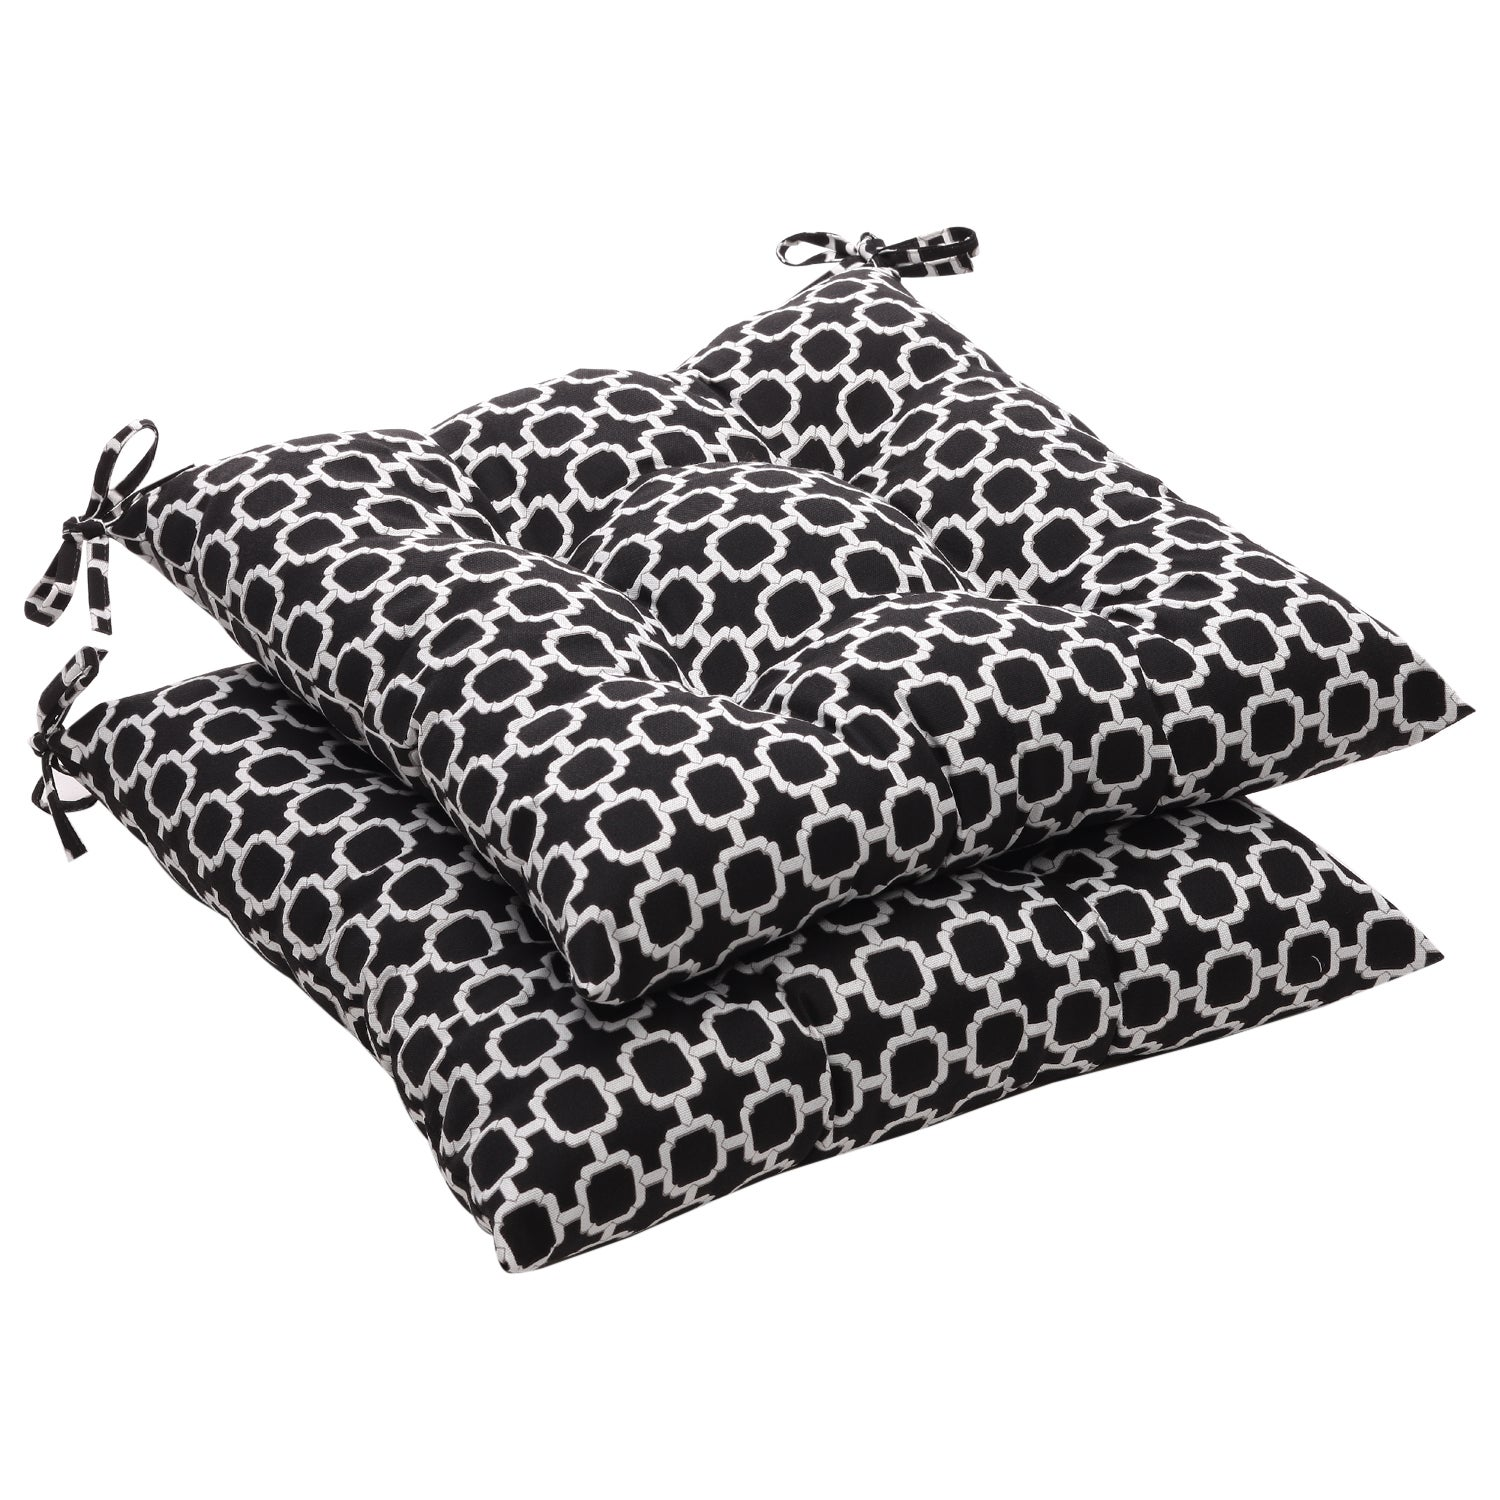 Patio Furniture Cushions White: Pillow Perfect Outdoor Tufted Black/ White Geometric Seat